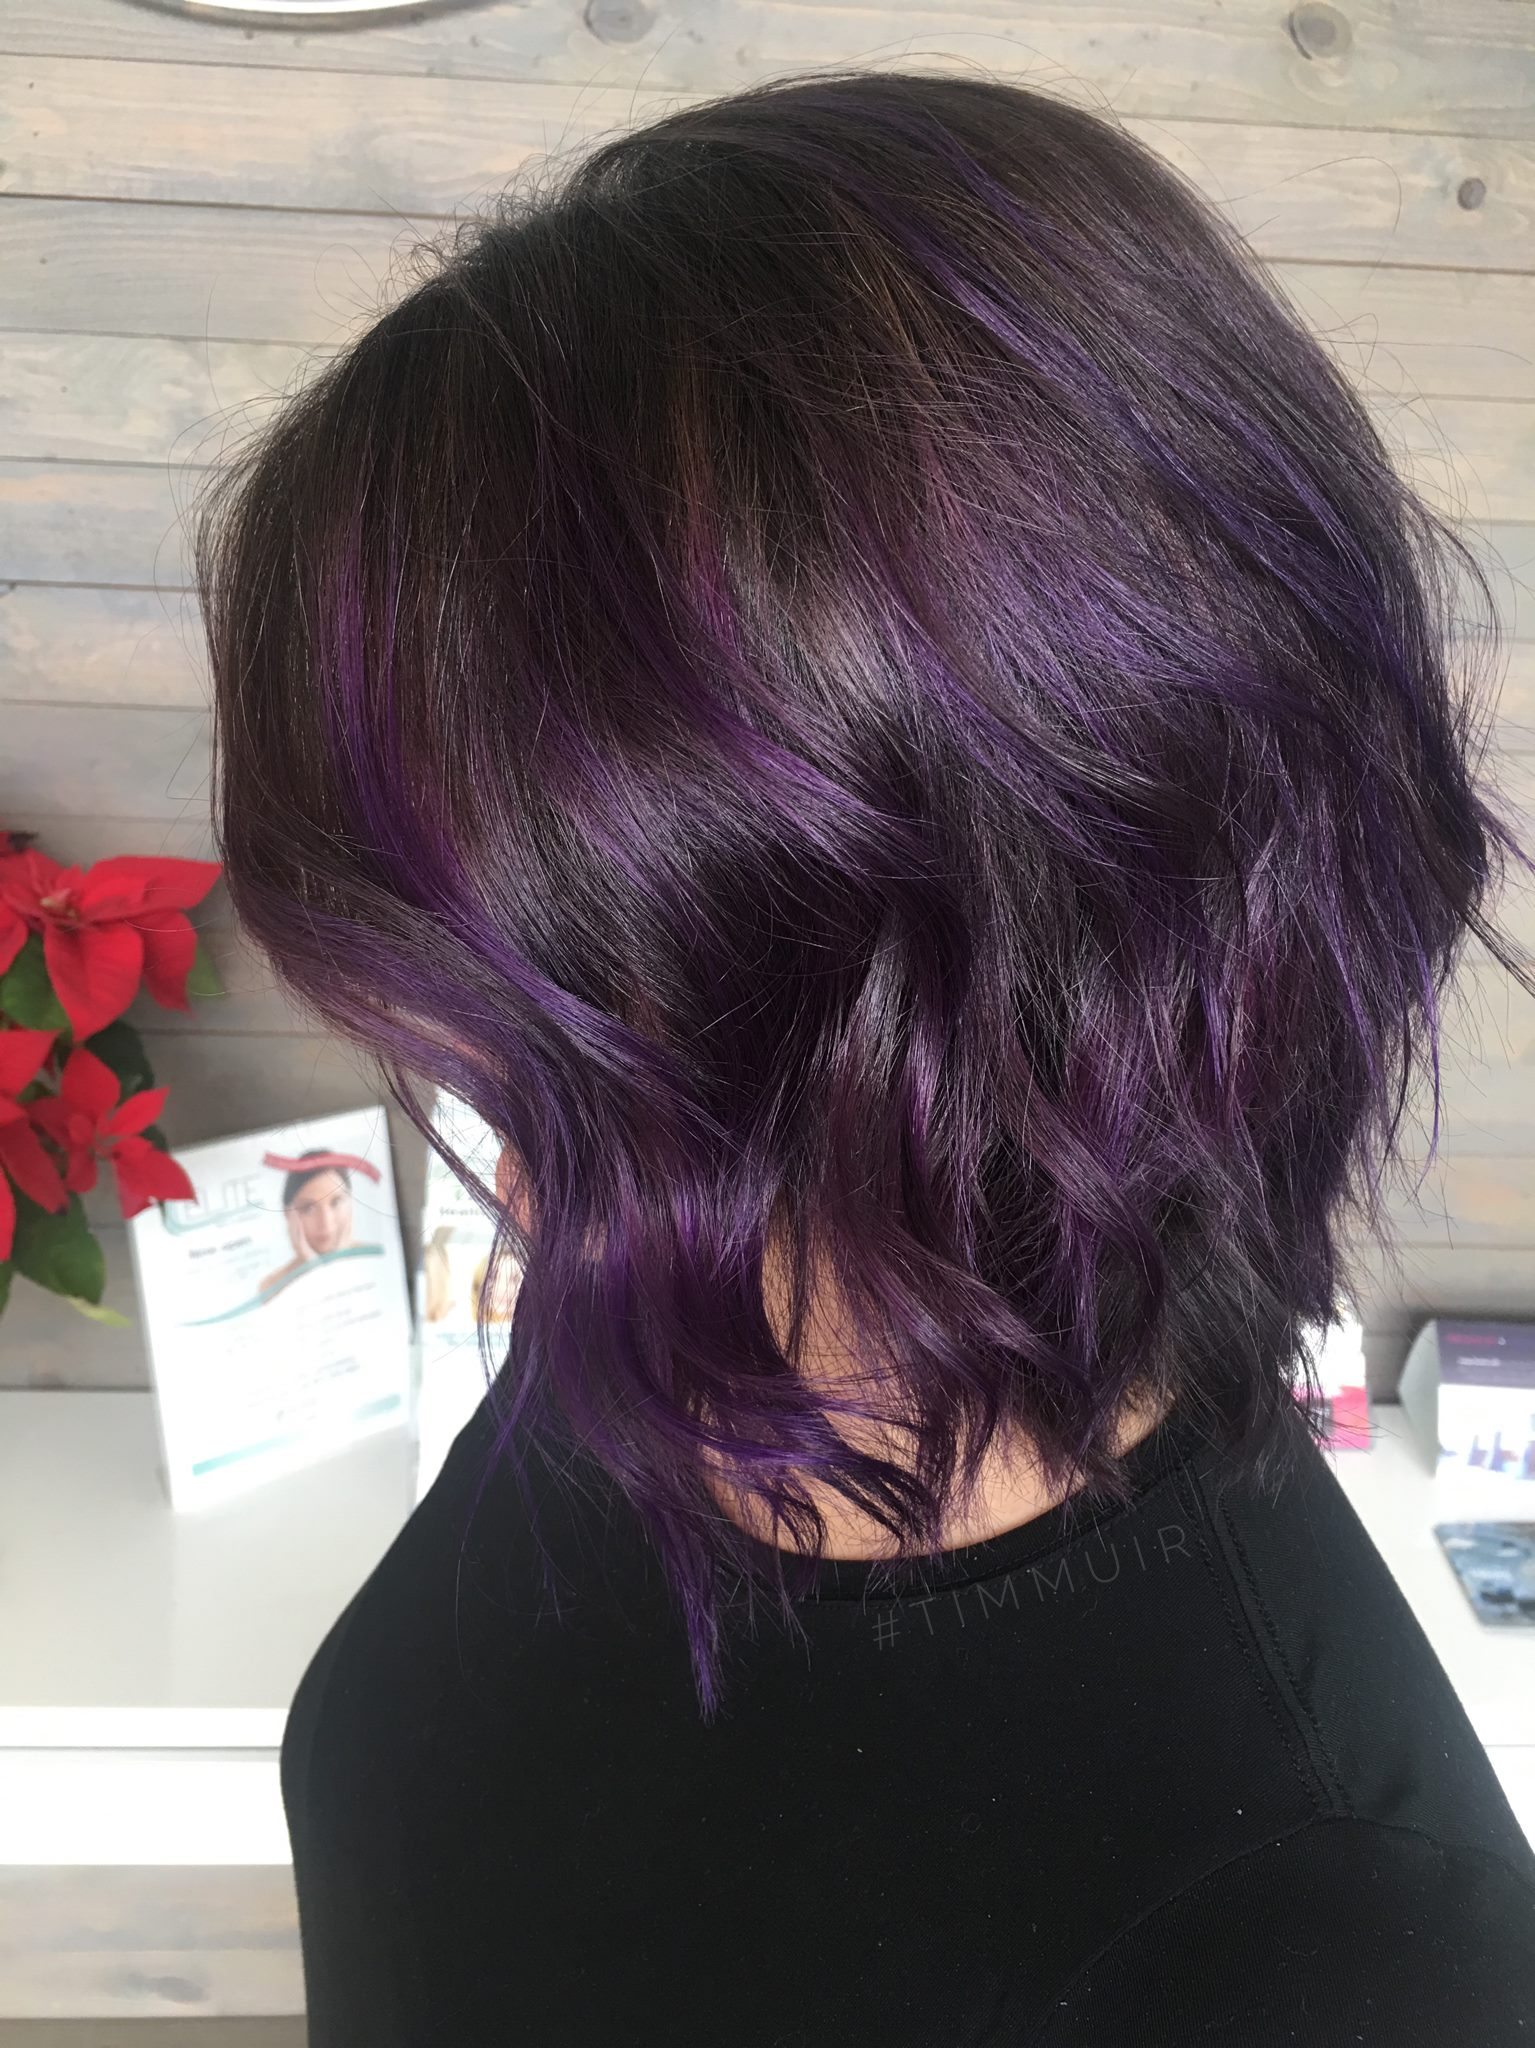 POPS OF VIOLET ON A CHOCOLATE BASE